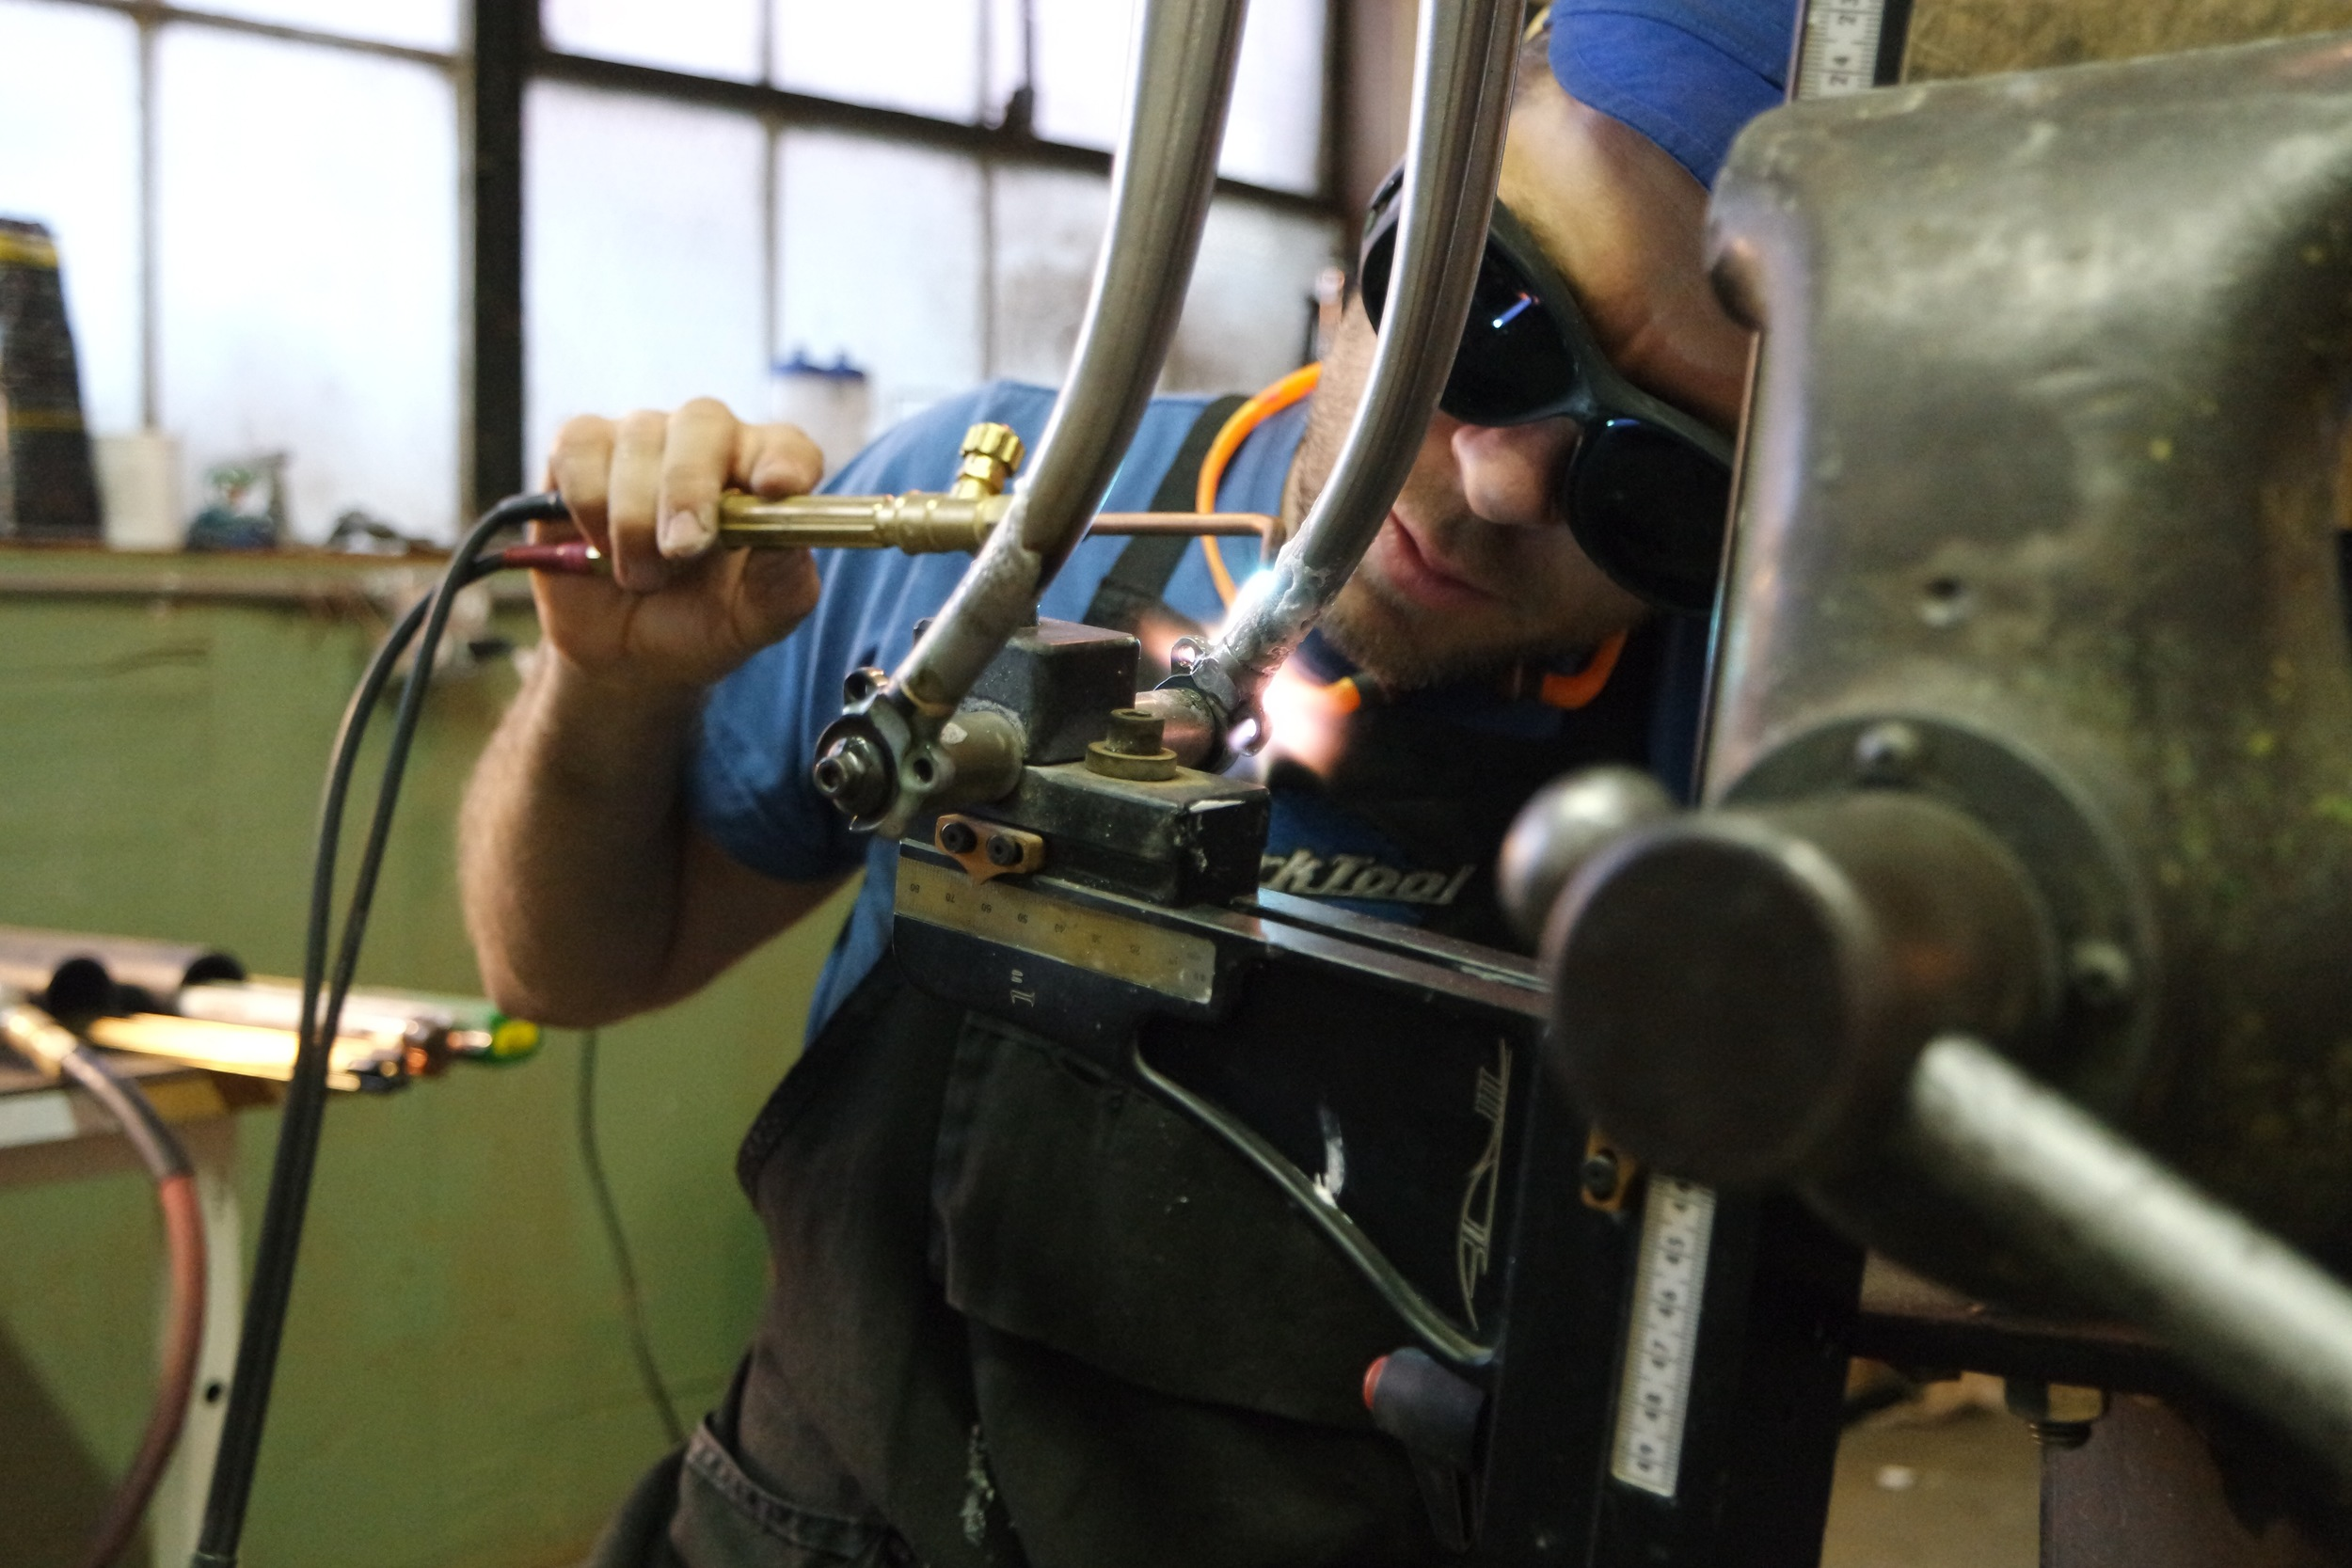 Yours truly in action, silver brazing plug-in dropouts to the fork blades.